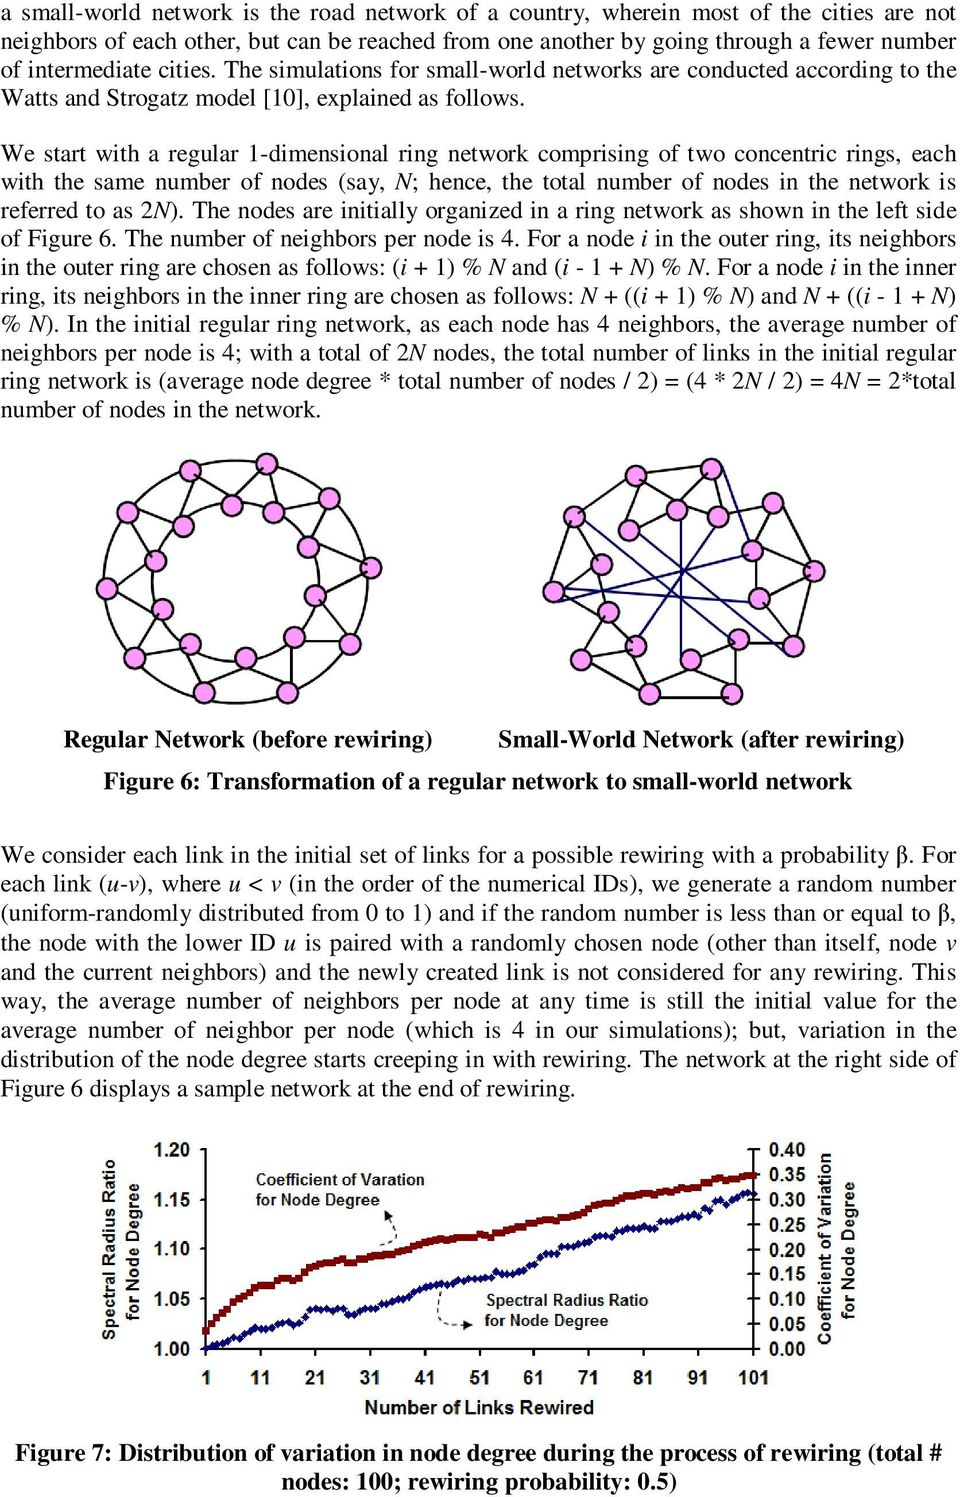 We start with a regular 1-dimensional ring network comprising of two concentric rings, each with the same number of nodes (say, N; hence, the total number of nodes in the network is referred to as